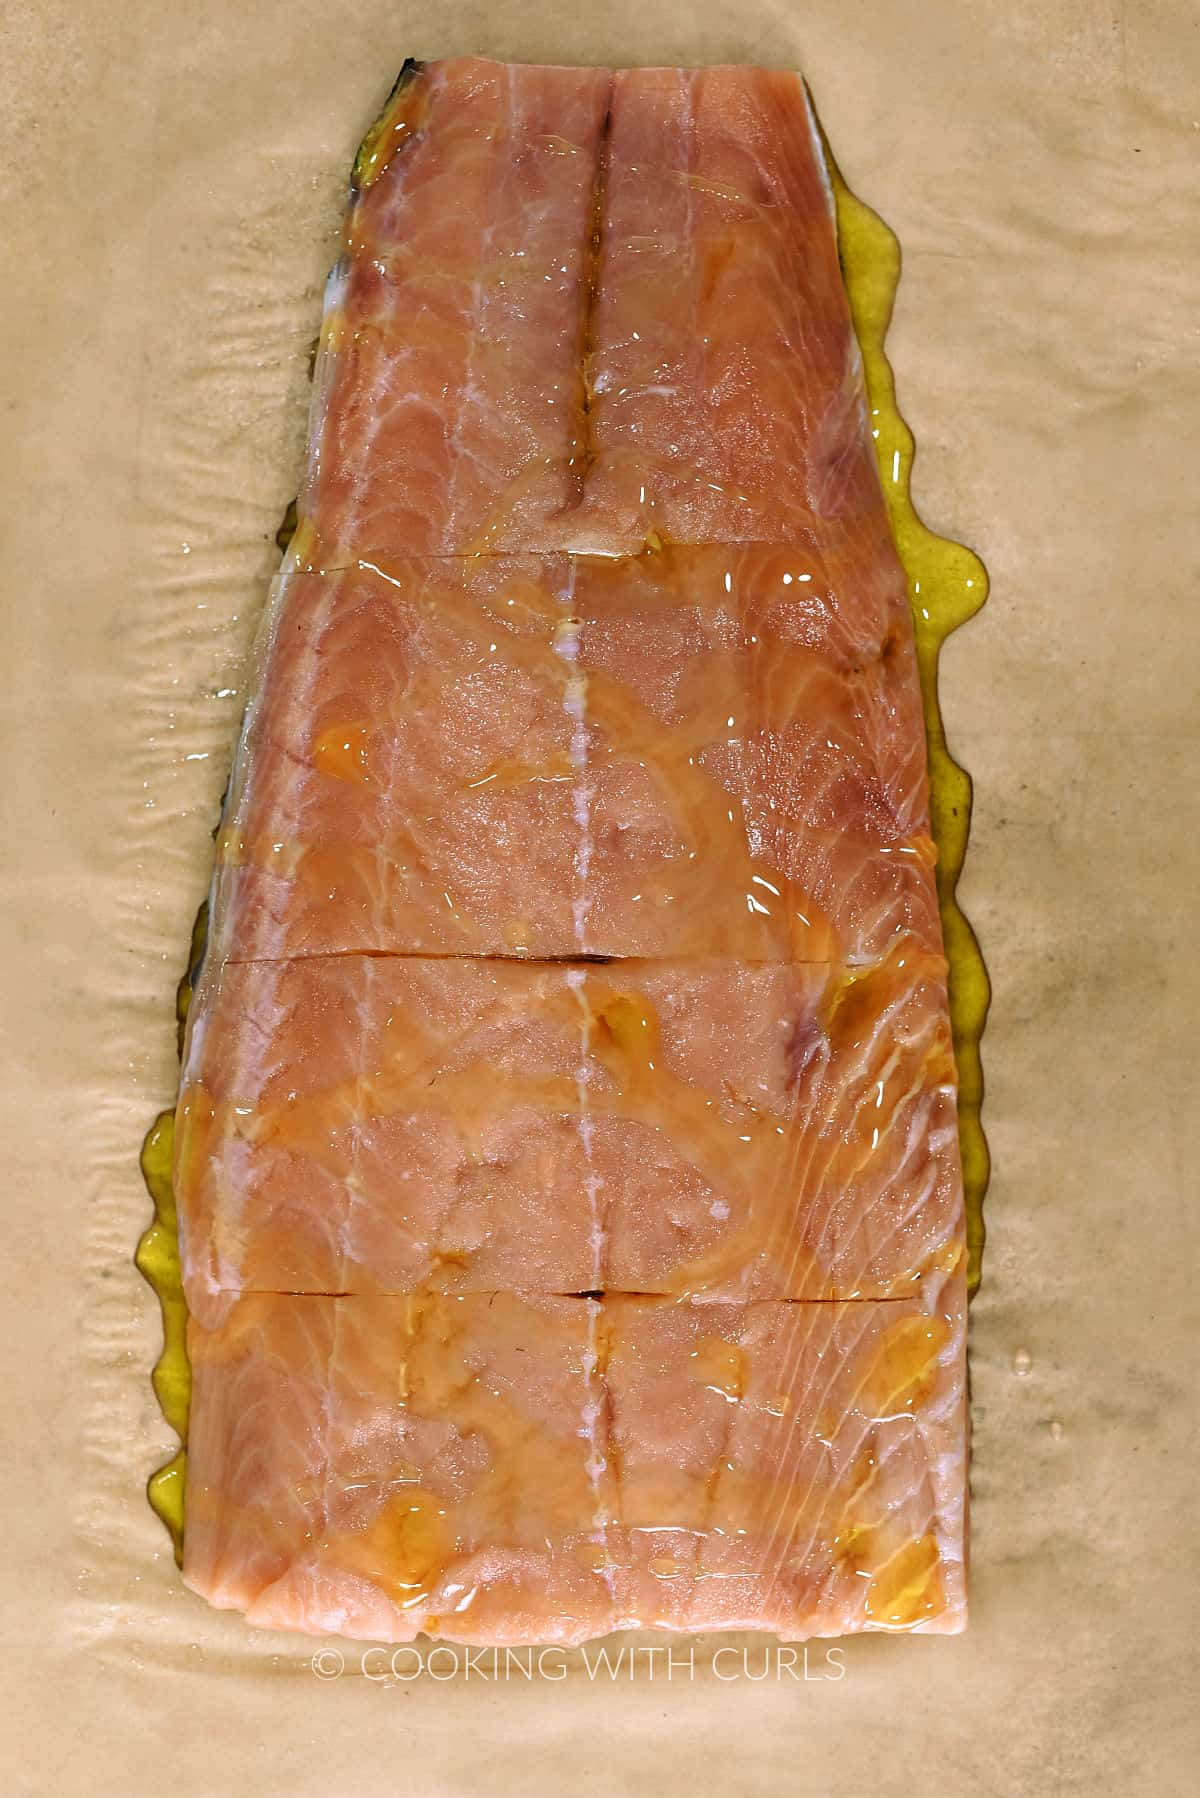 Salmon filet drizzled with olive oil on a parchment paper.